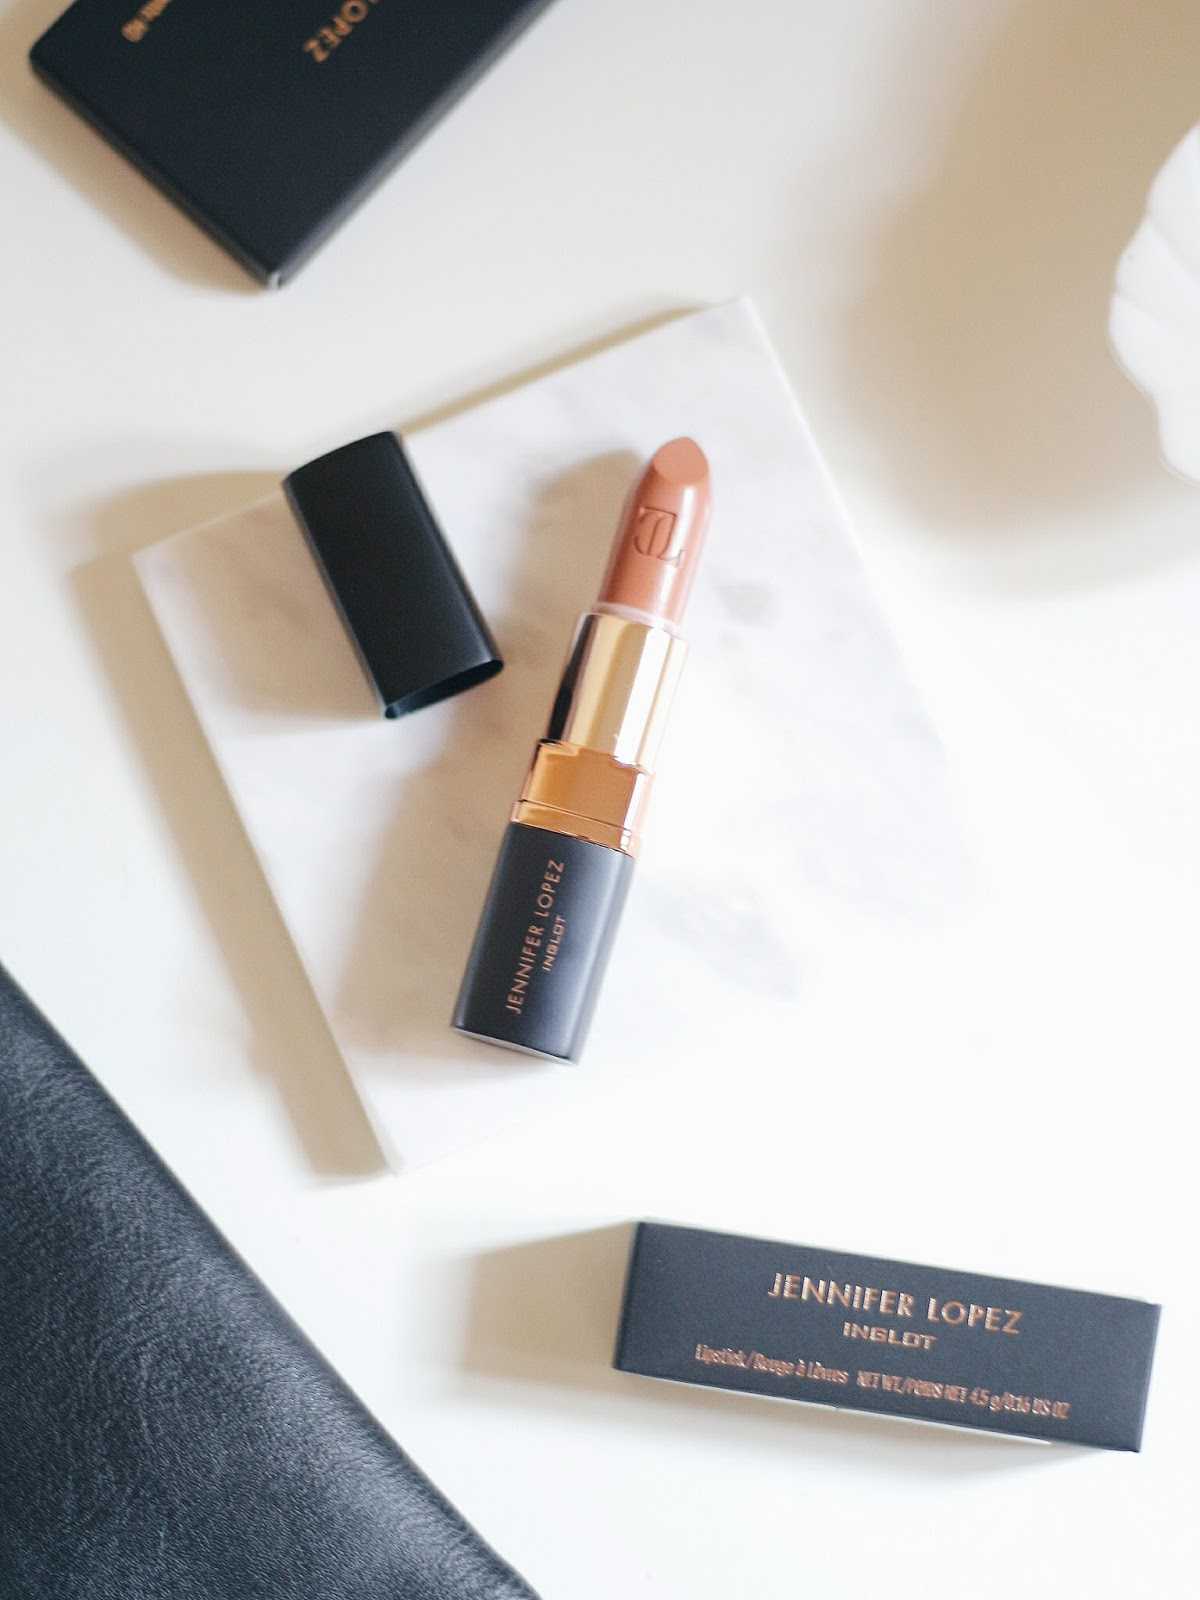 Jennifer Lopez Inglot Lipstick Dolce J203 Review Swatch